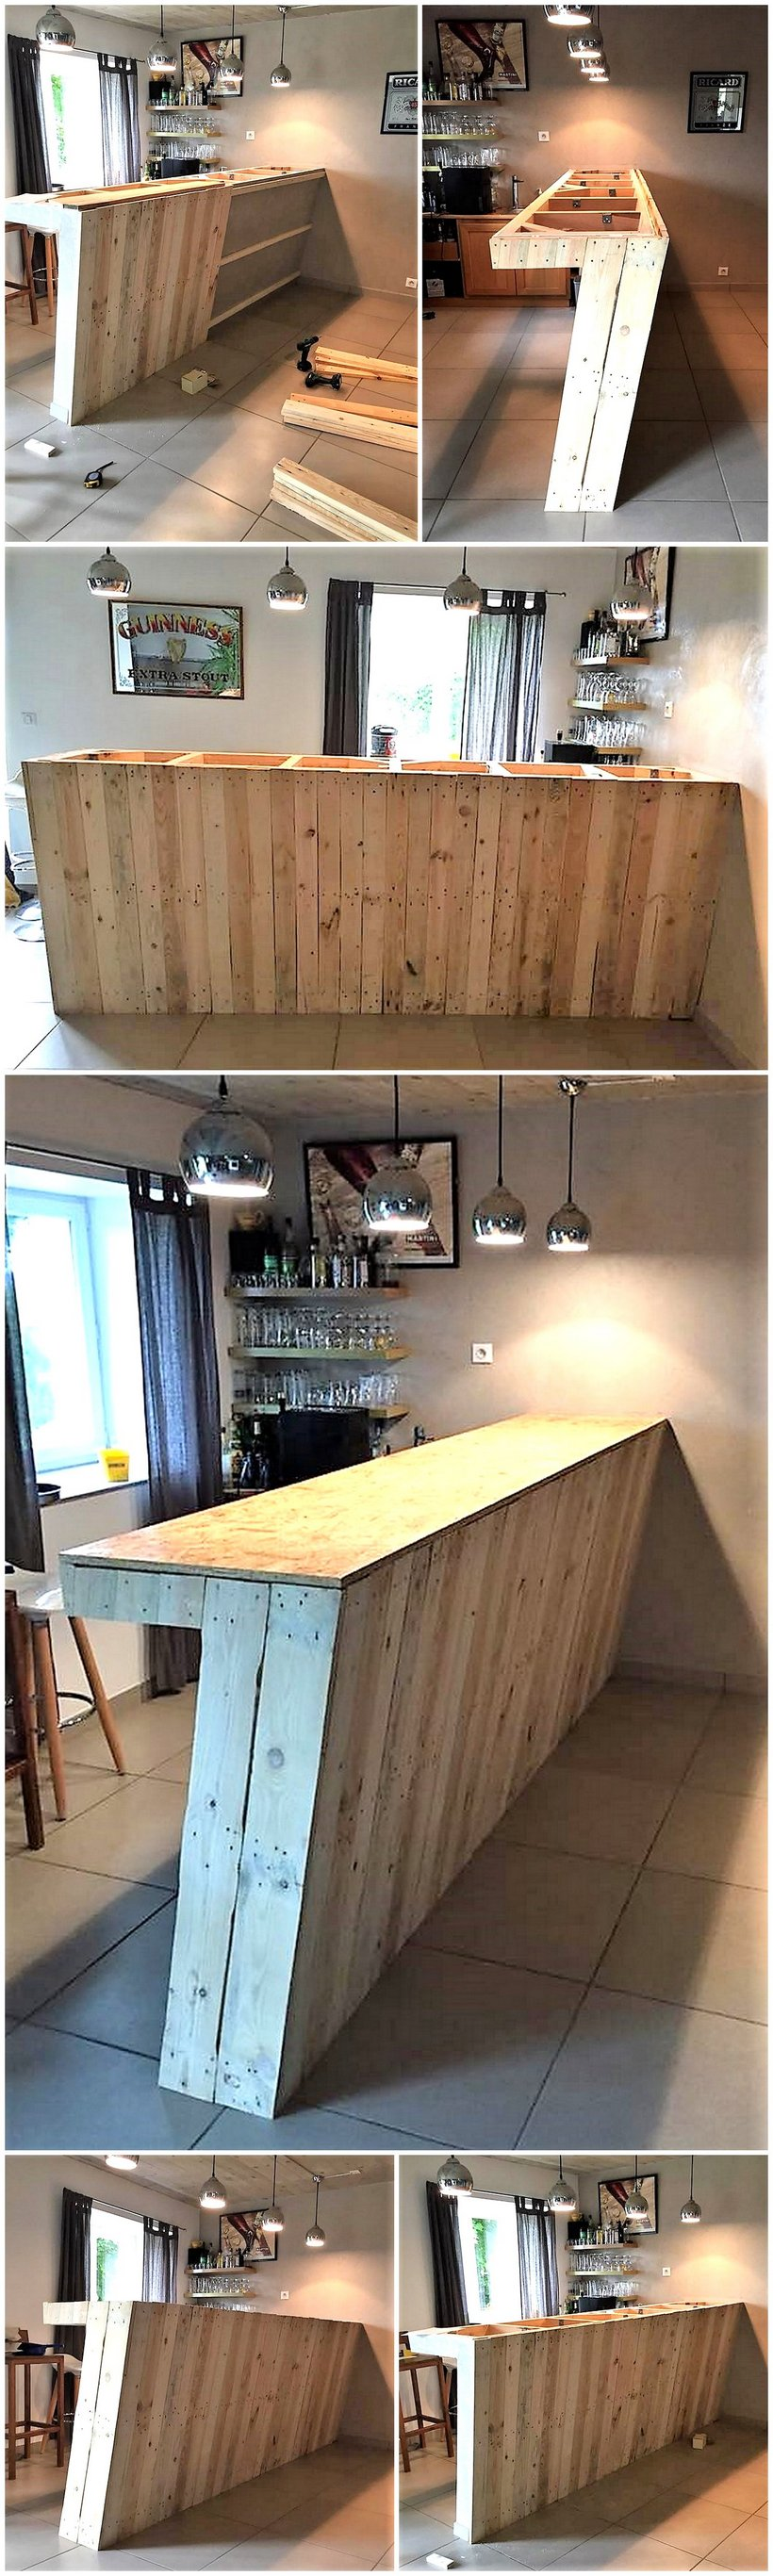 DIY wood pallet bar counter